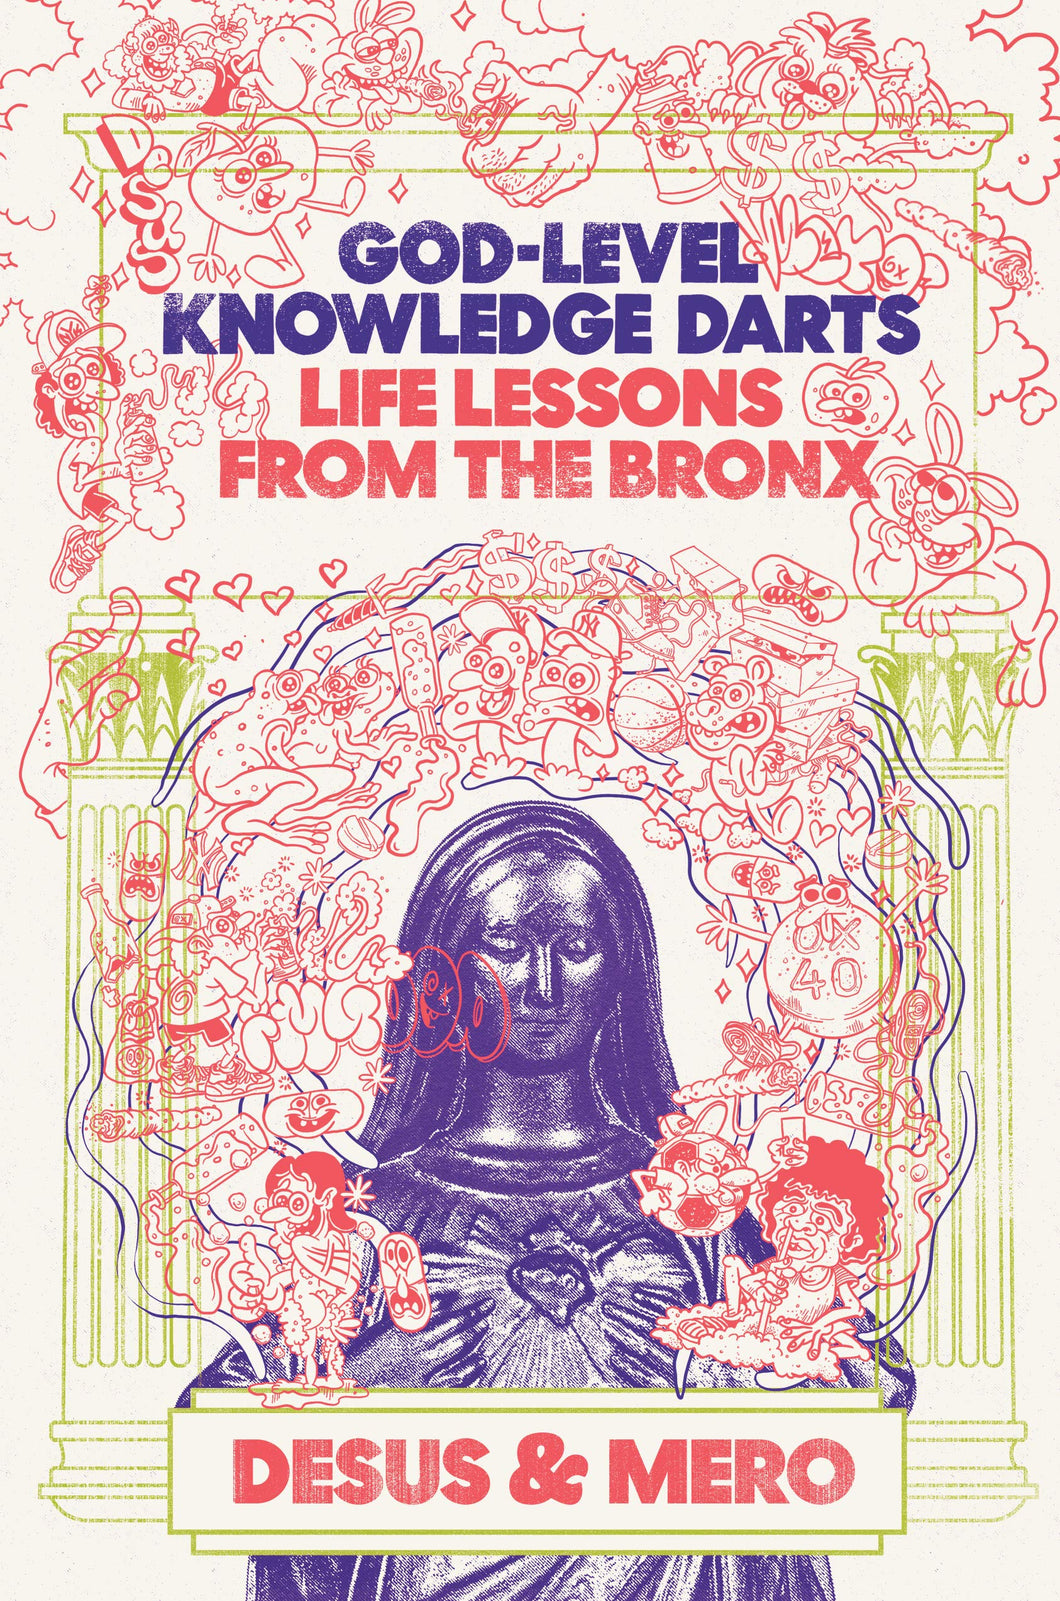 God-Level Knowledge Darts: Life Lessons from the Bronx by Desus & Mero (Pre-Order, Sep 22)